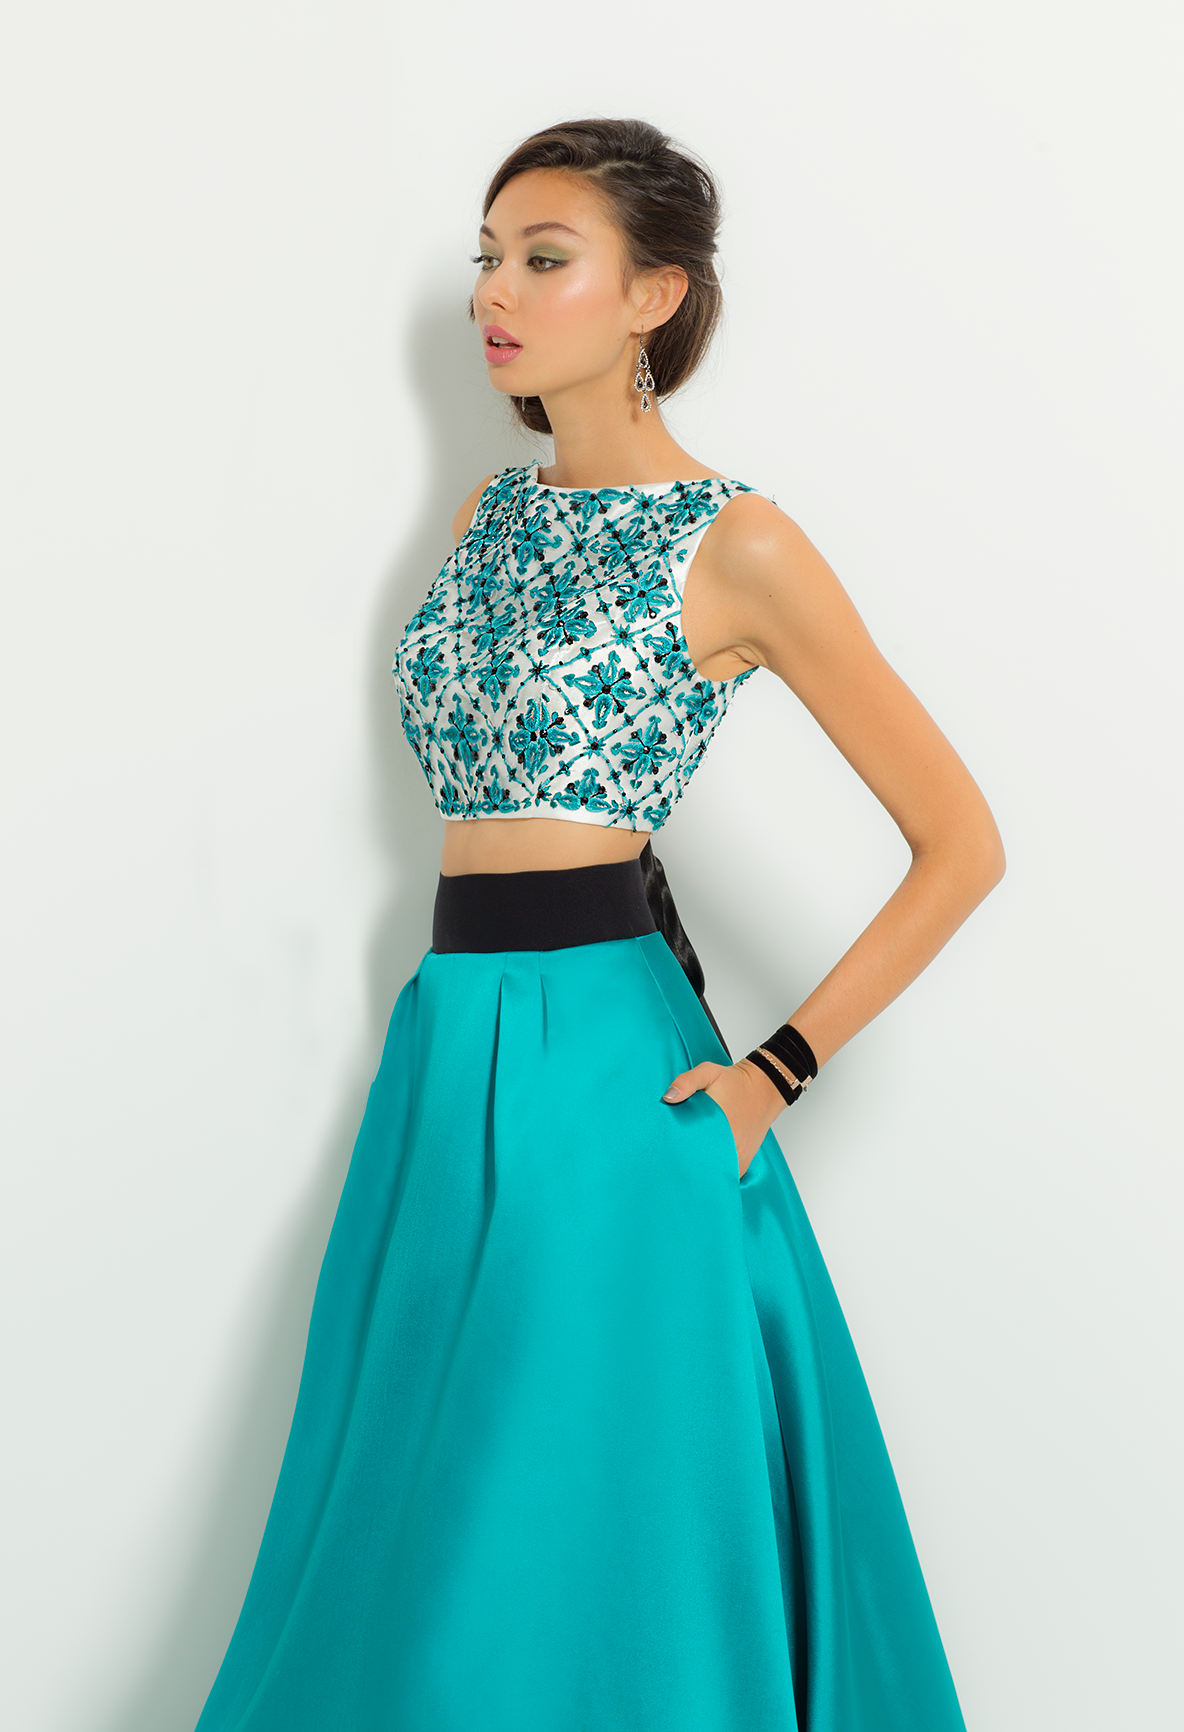 Have A Ball At Your Next Special Event In This Grand Party Dress With Its Portrait Neckline Beaded Crop Top With Co Beautiful Outfits Prom Style Prom Dresses